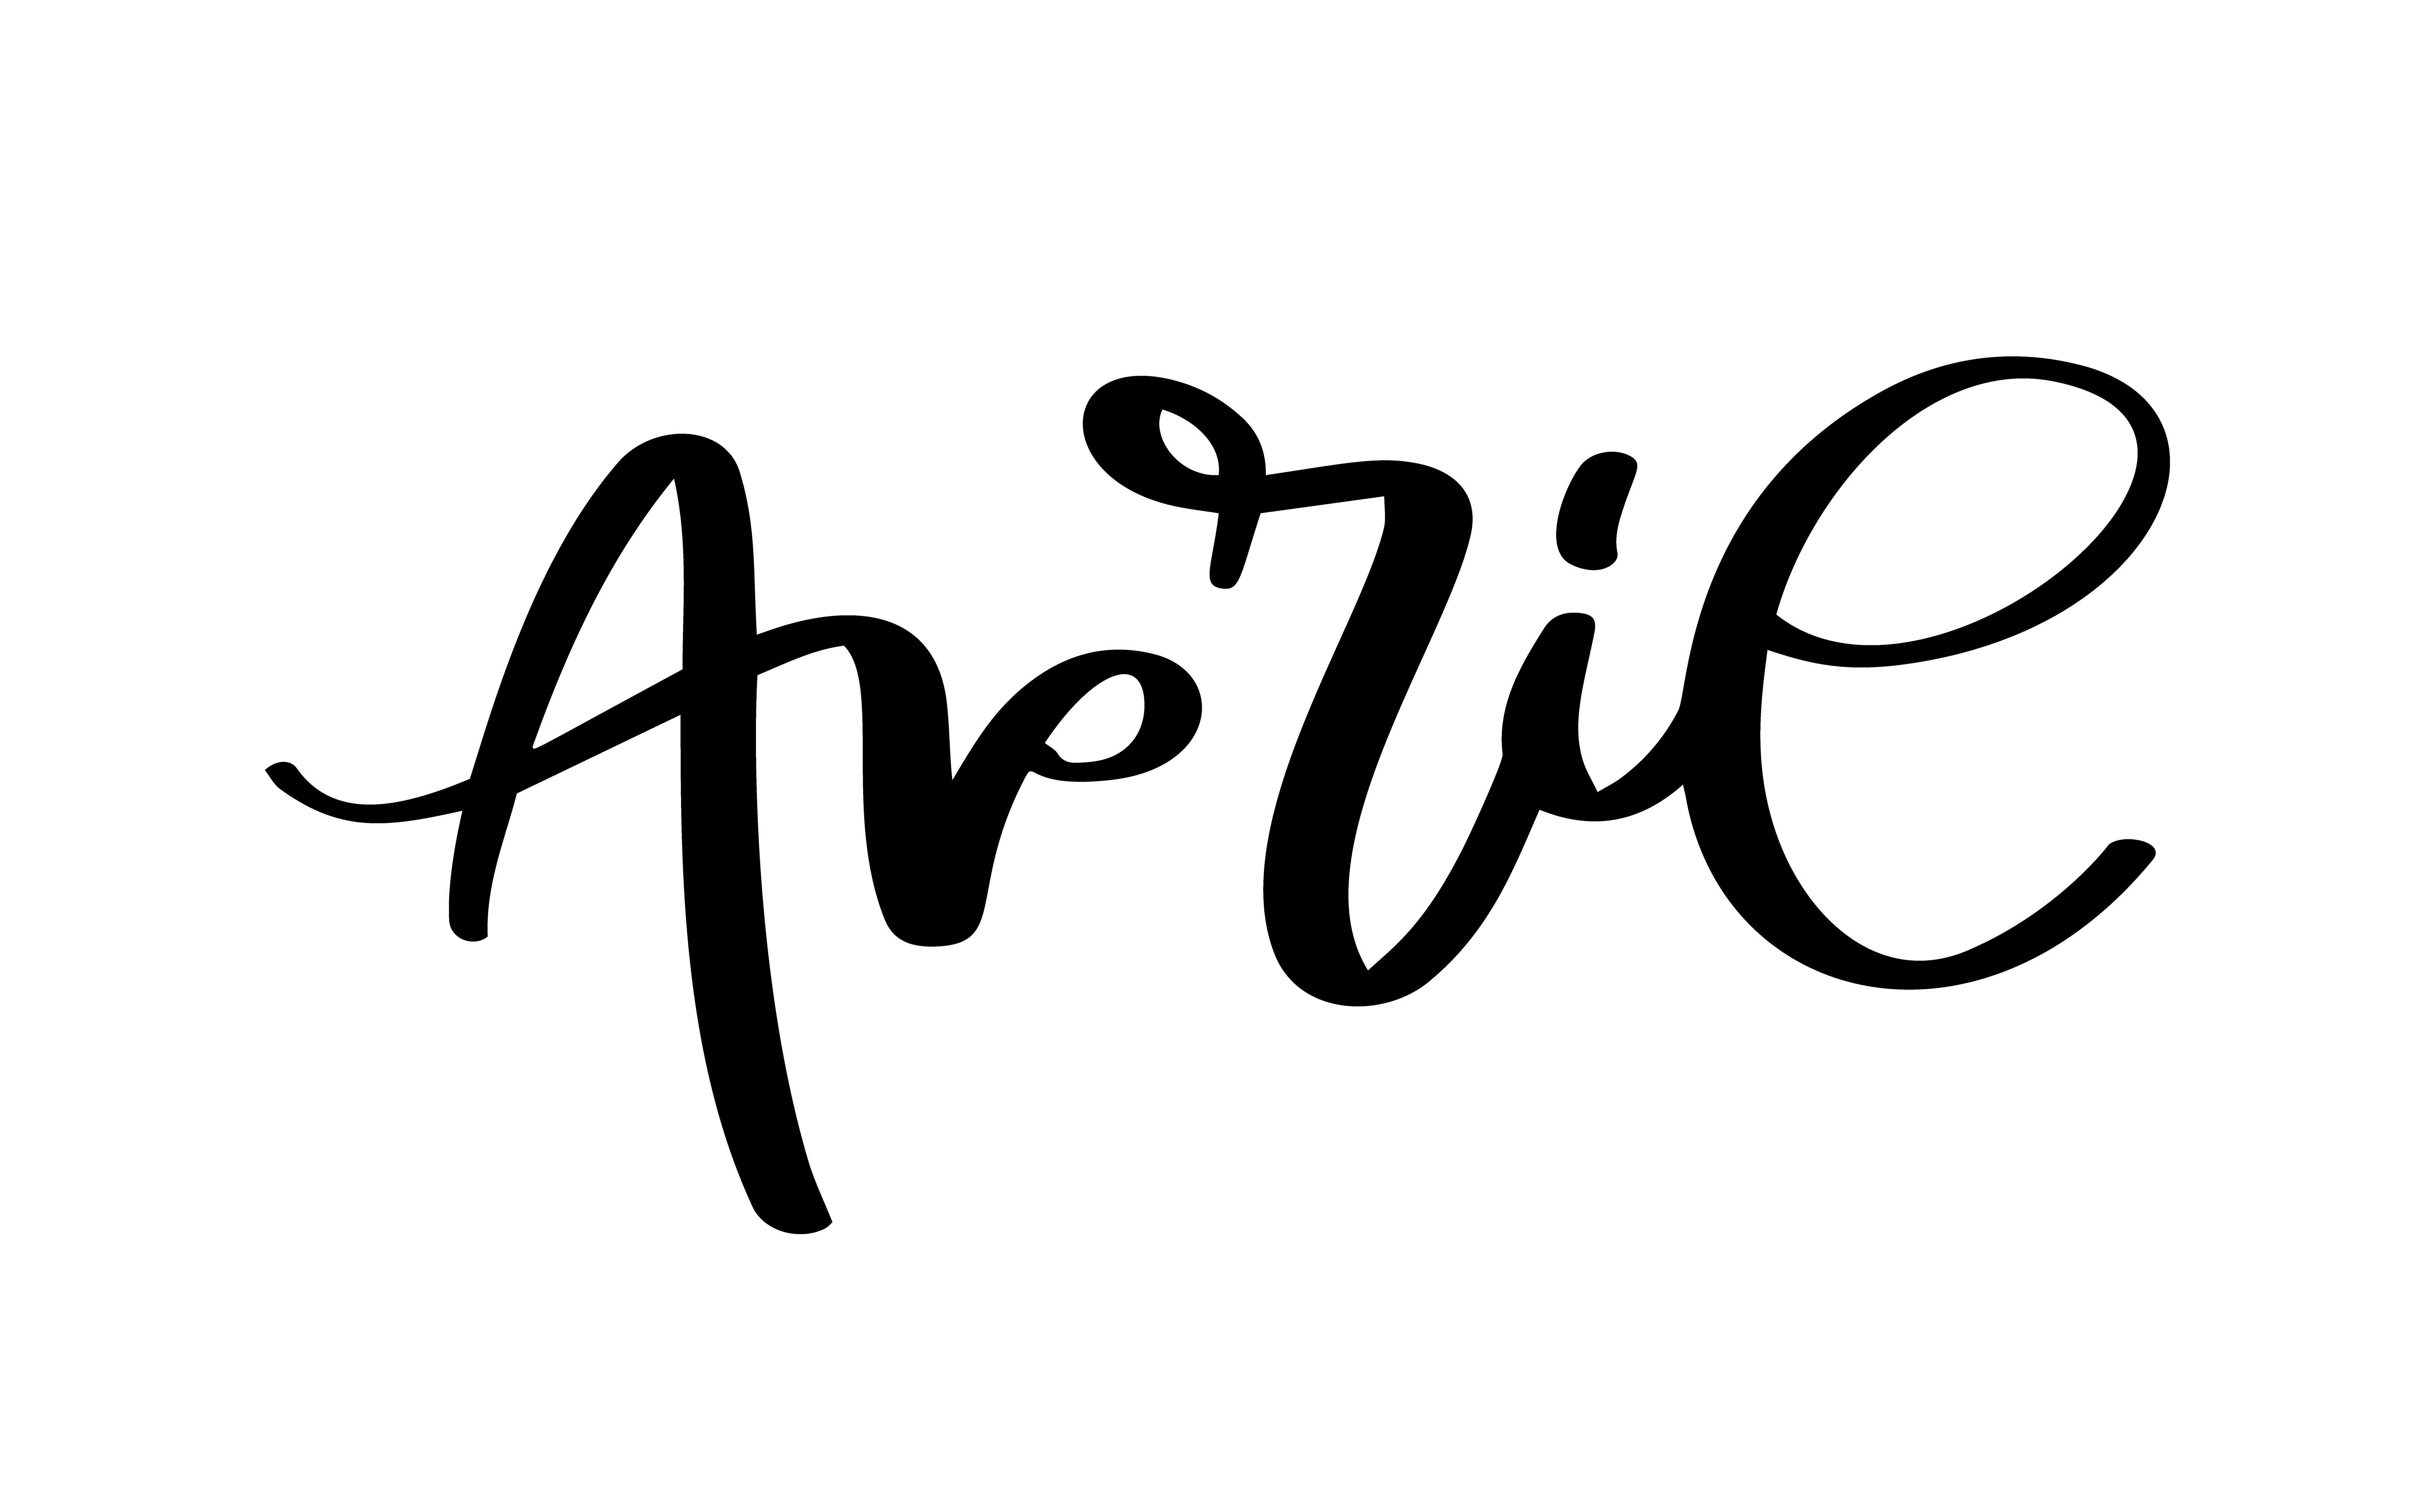 April Hand Drawn Calligraphy Text And Brush Pen Lettering